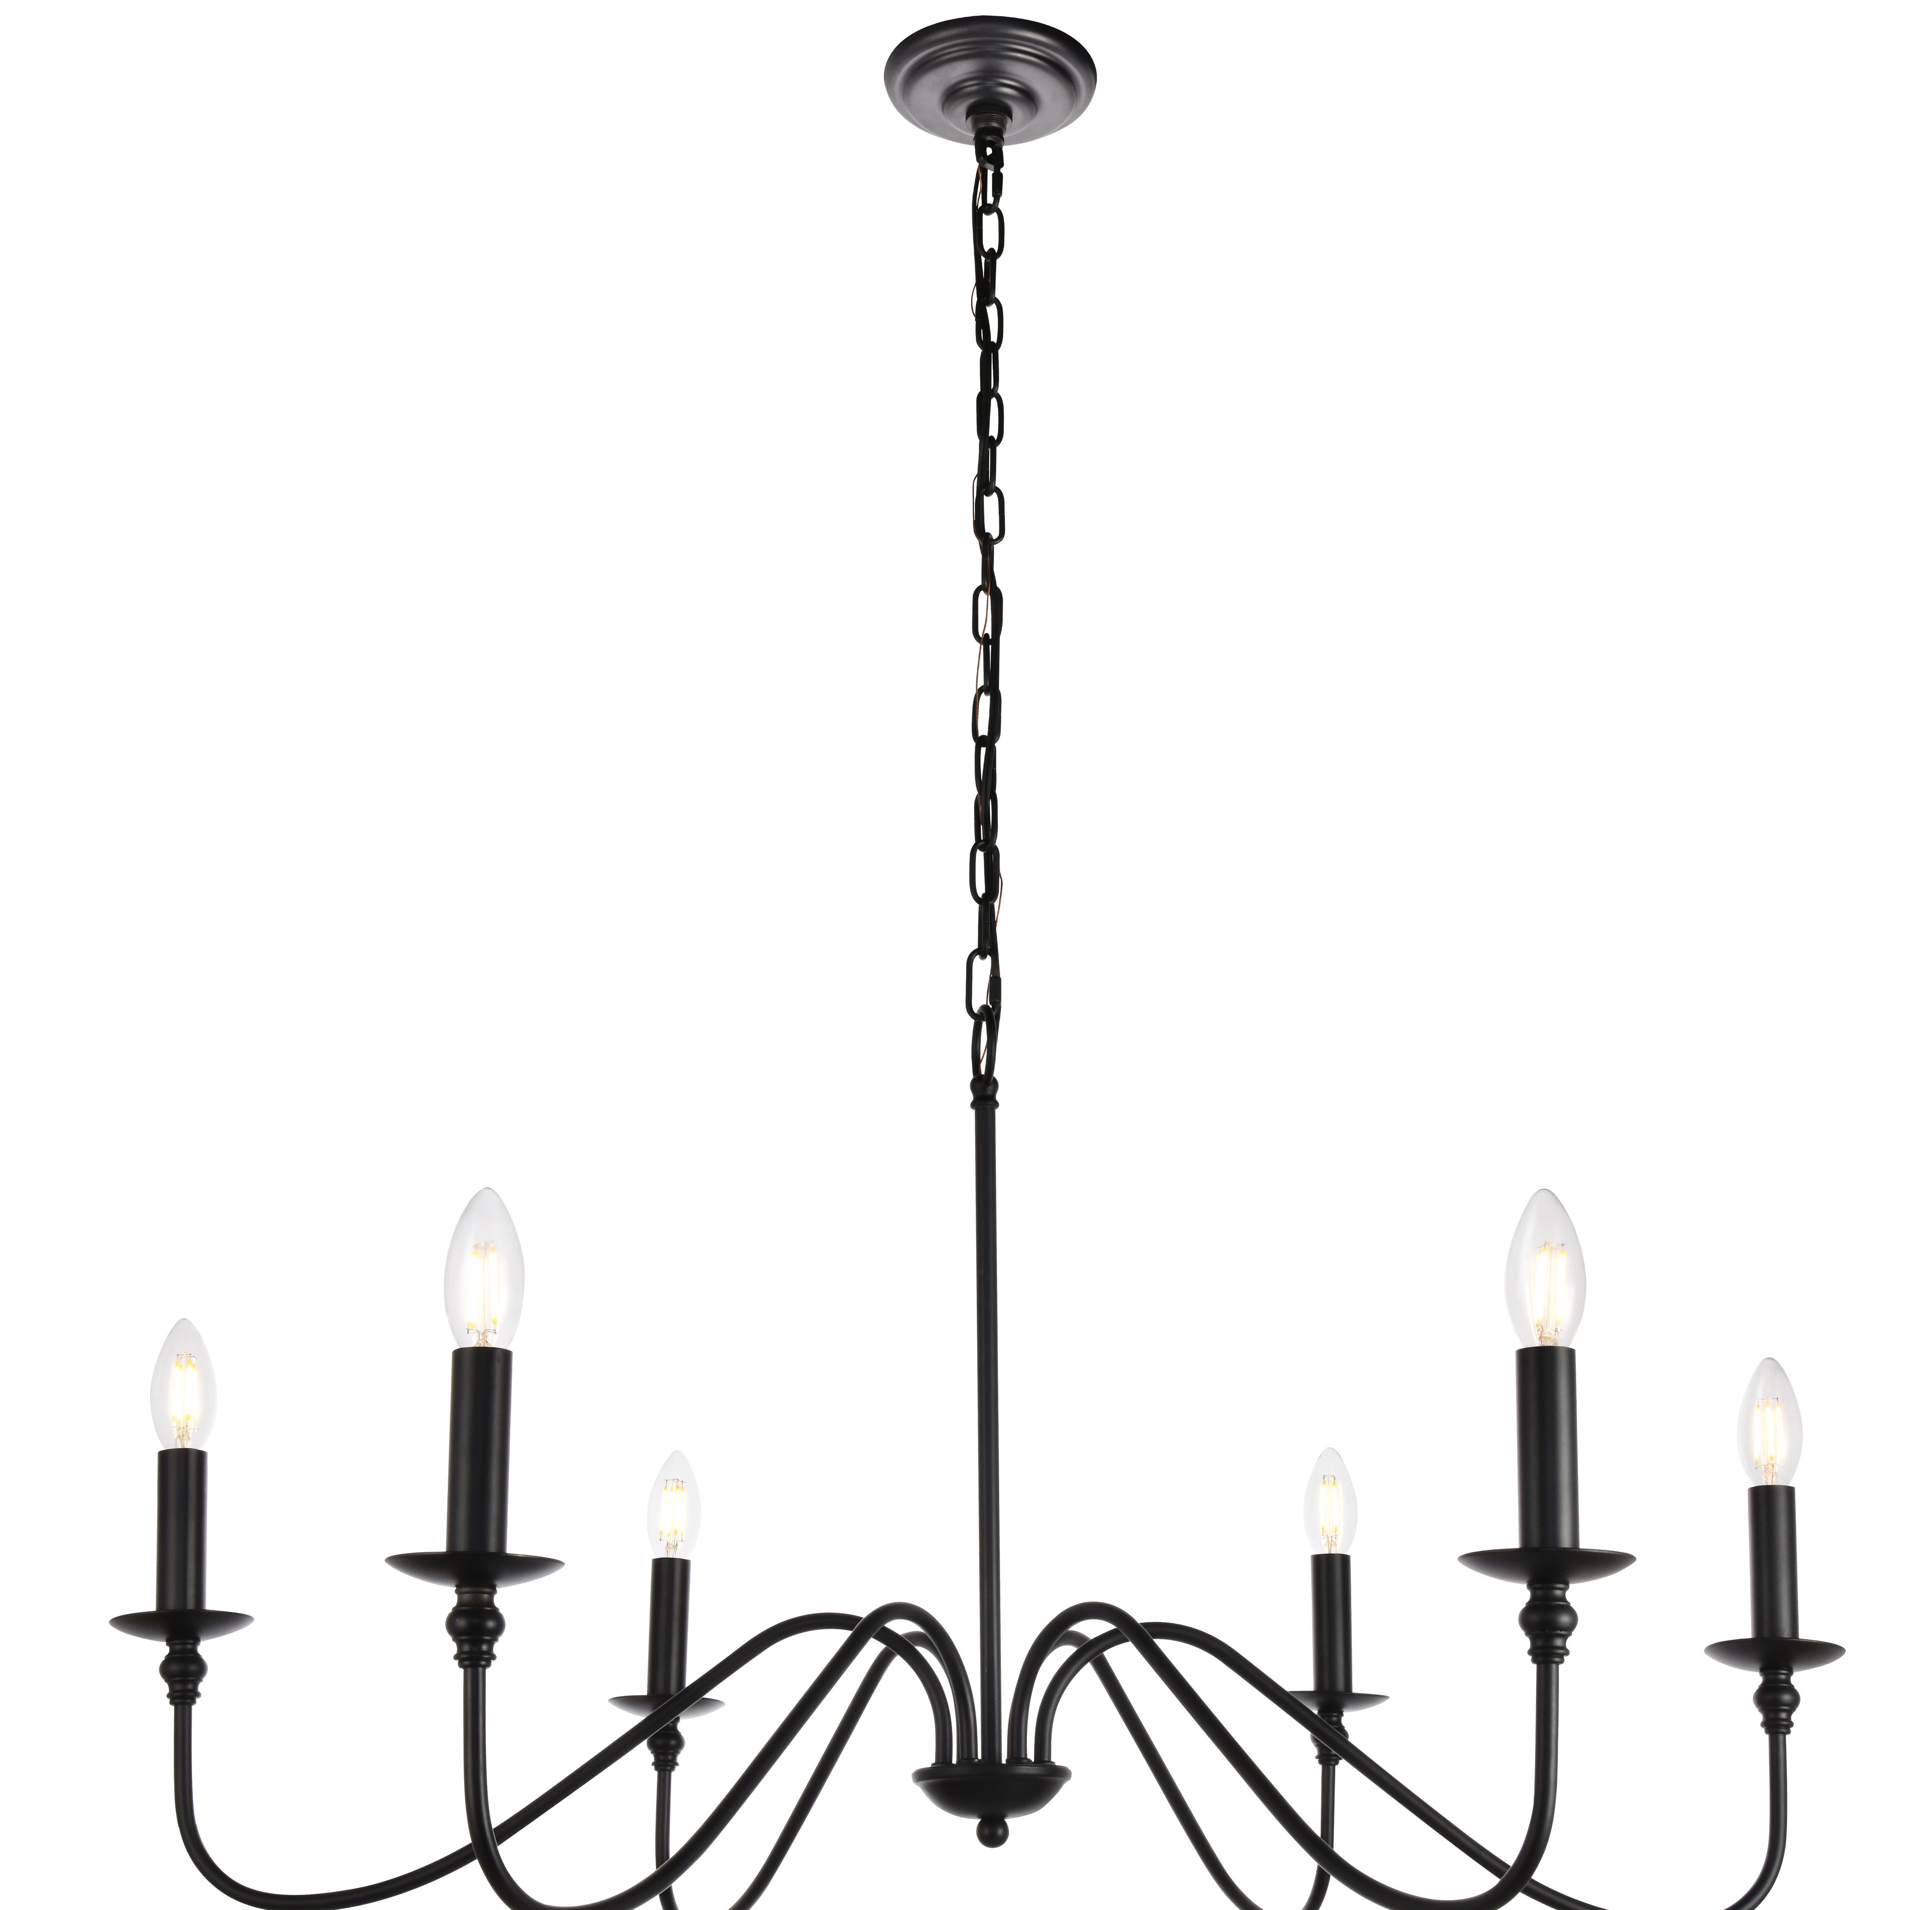 Hamza 6-Light Candle Style Chandelier in Shaylee 5-Light Candle Style Chandeliers (Image 9 of 30)